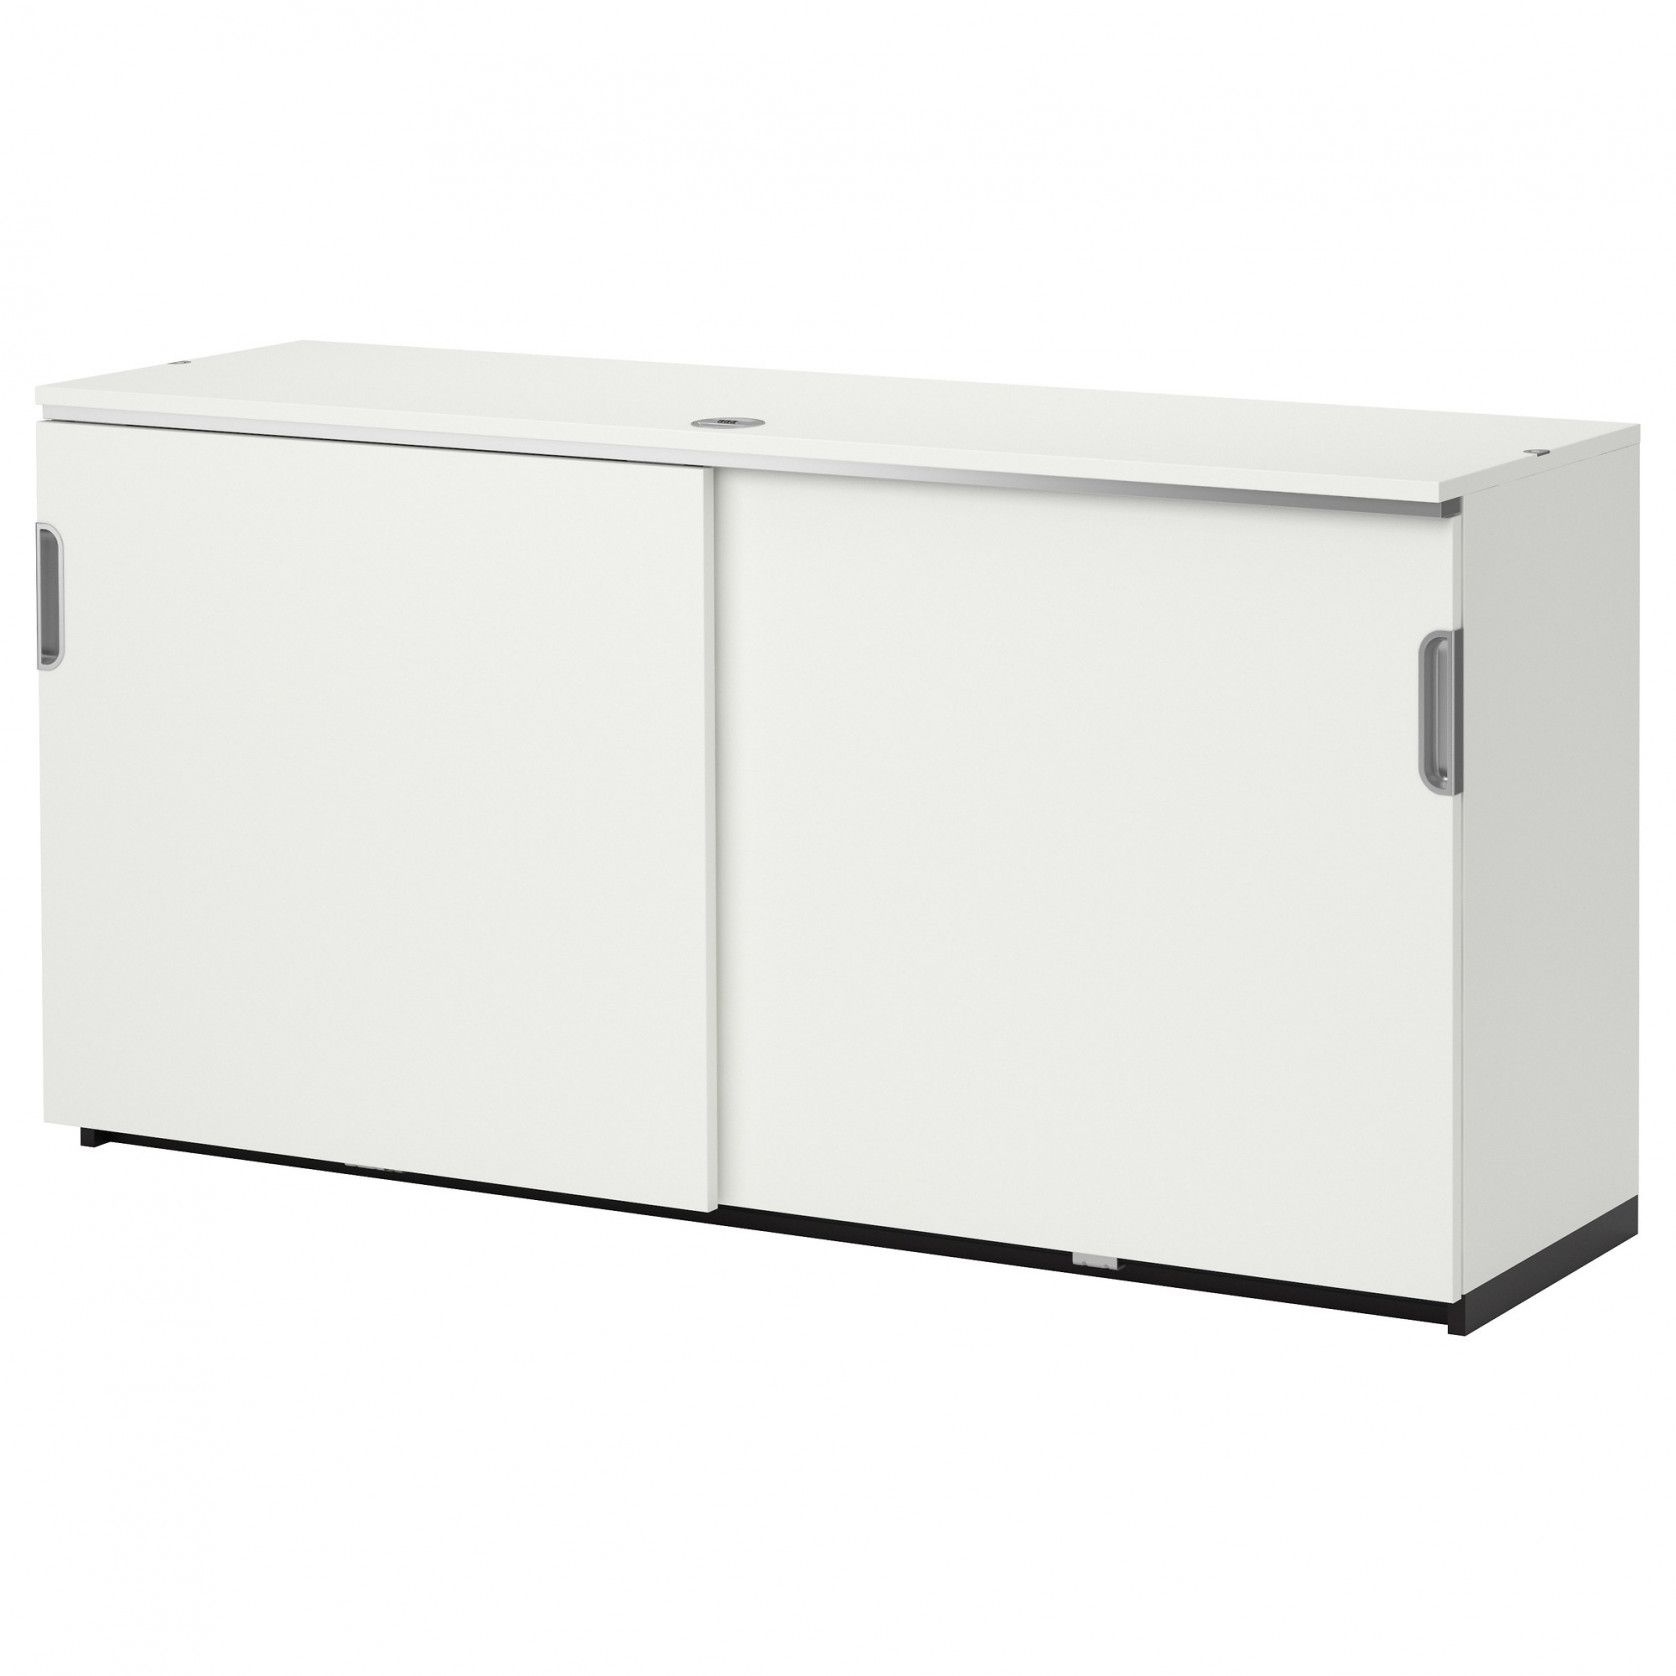 shelving wide cupboard inch lockable home solutions filing cabinet doors decoration wall locks cabinets mounted metal office units with for storage